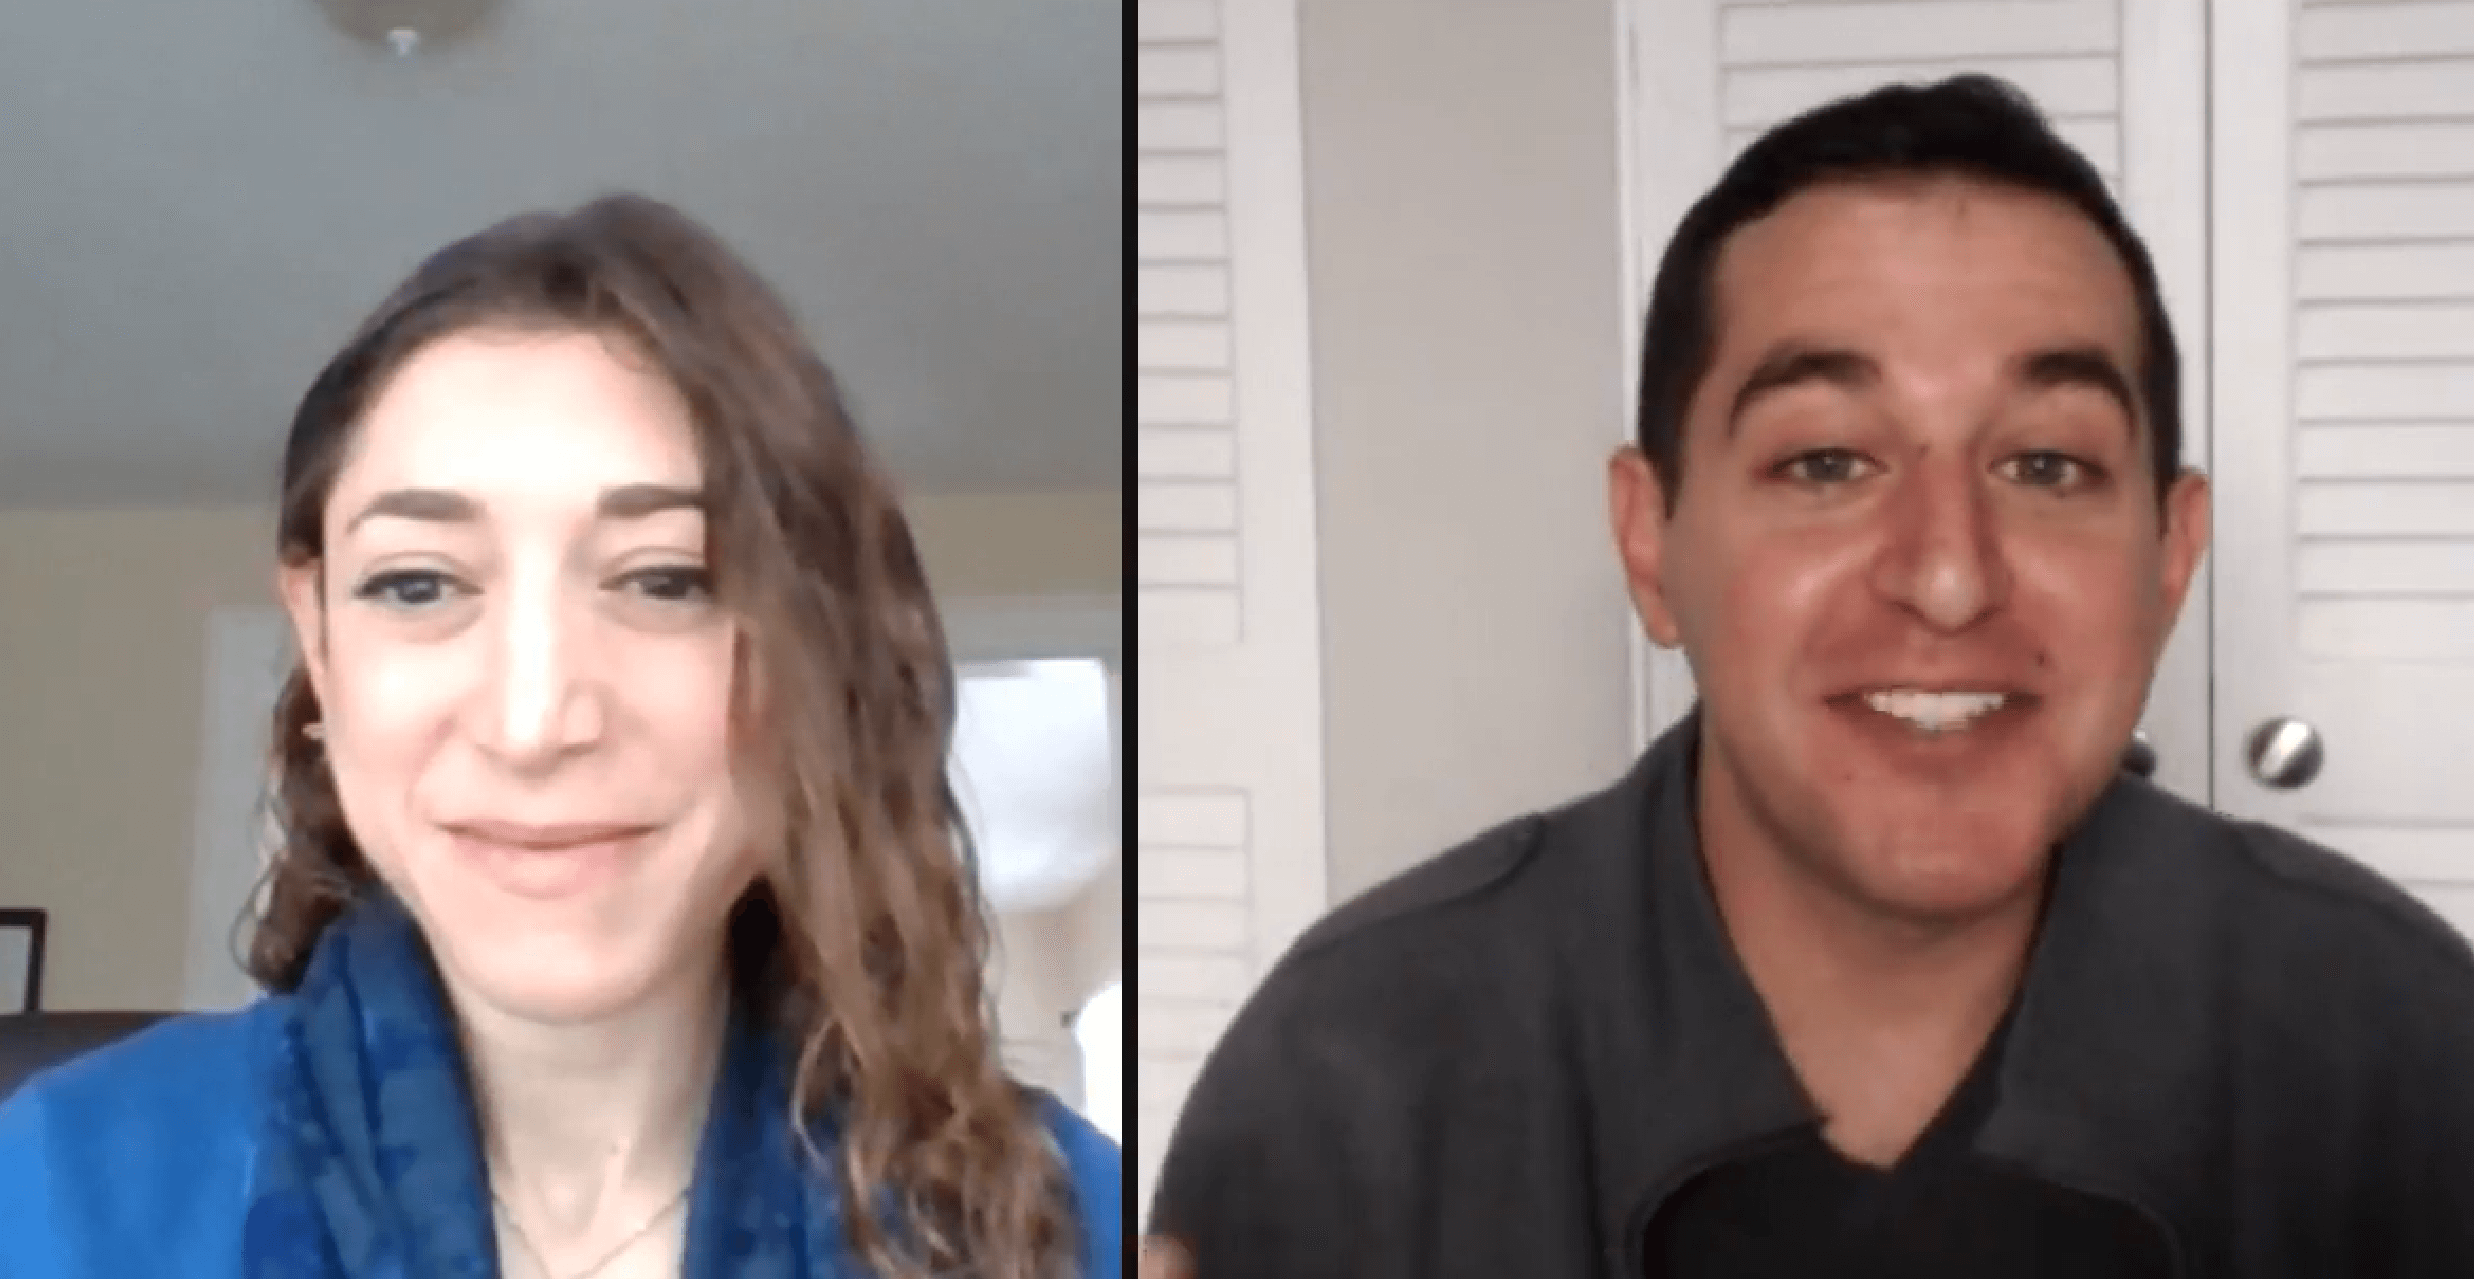 Indie Law's Joey Vitale Hosts Smith.ai's Maddy Martin on The Indie Show